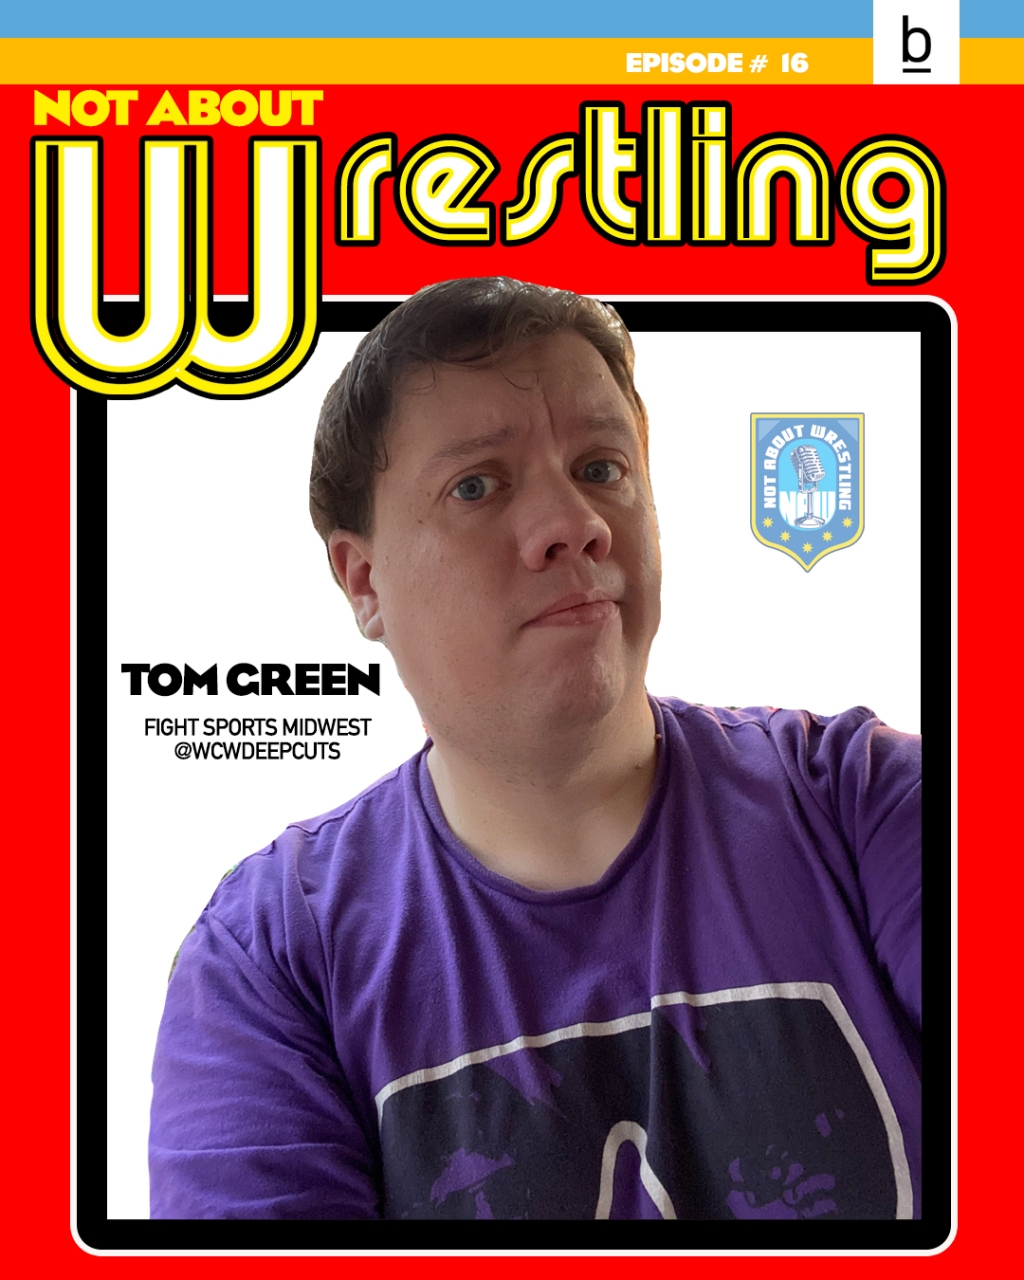 Tom Green Not About Wrestling